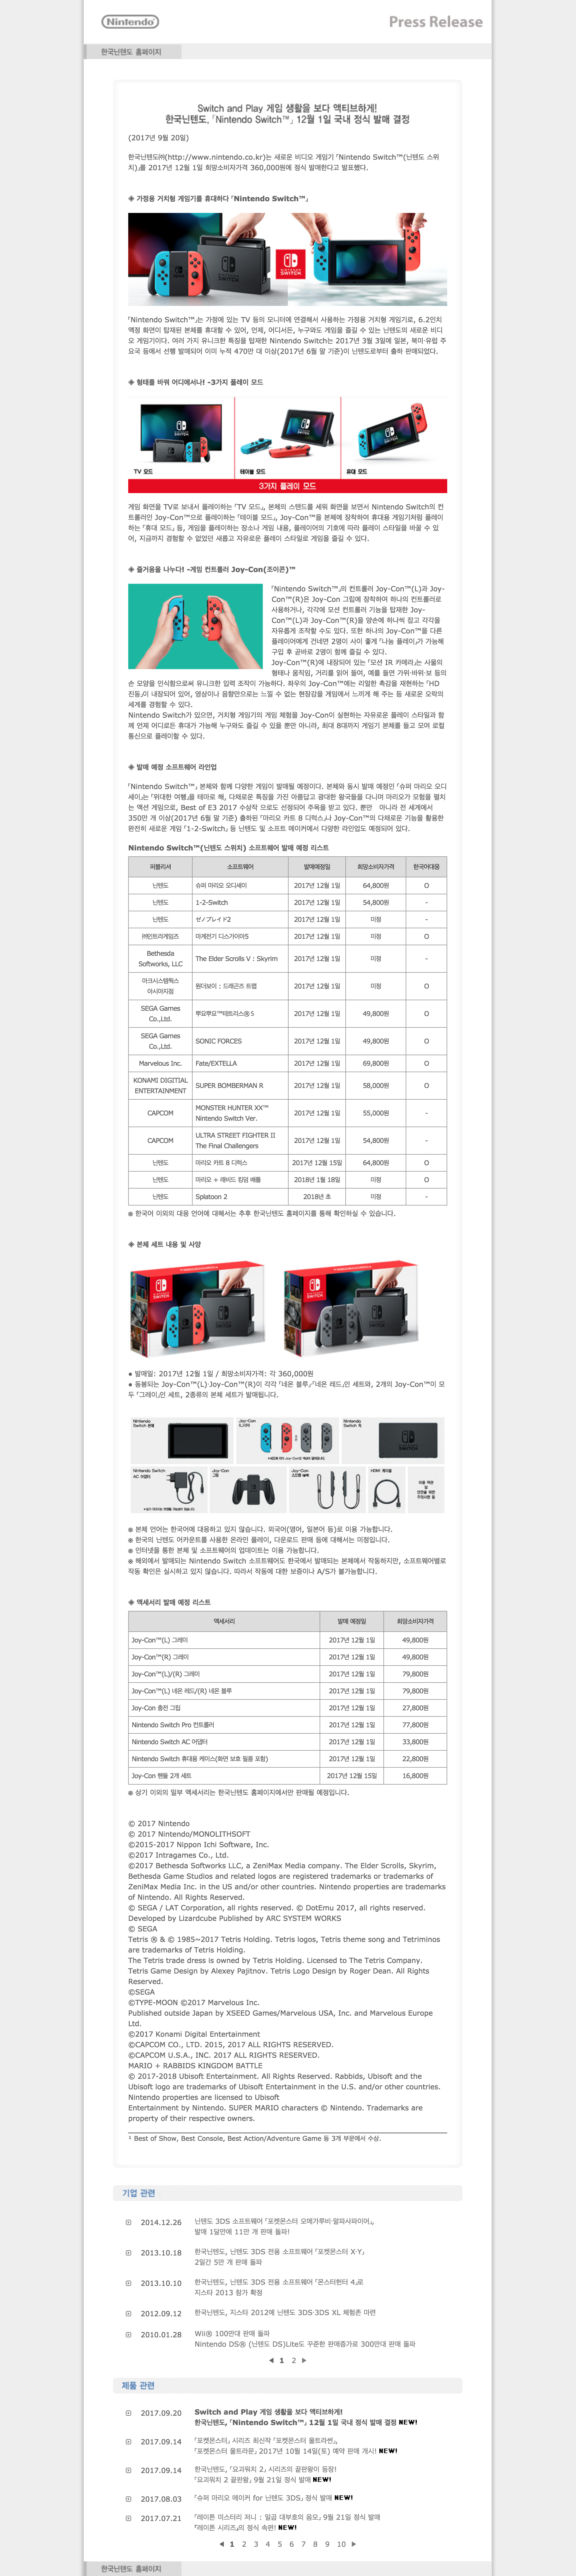 www.nintendo.co.kr-PR-press_list.php-cPage1=1&cPage2=1&idx=274&press_div=P.png